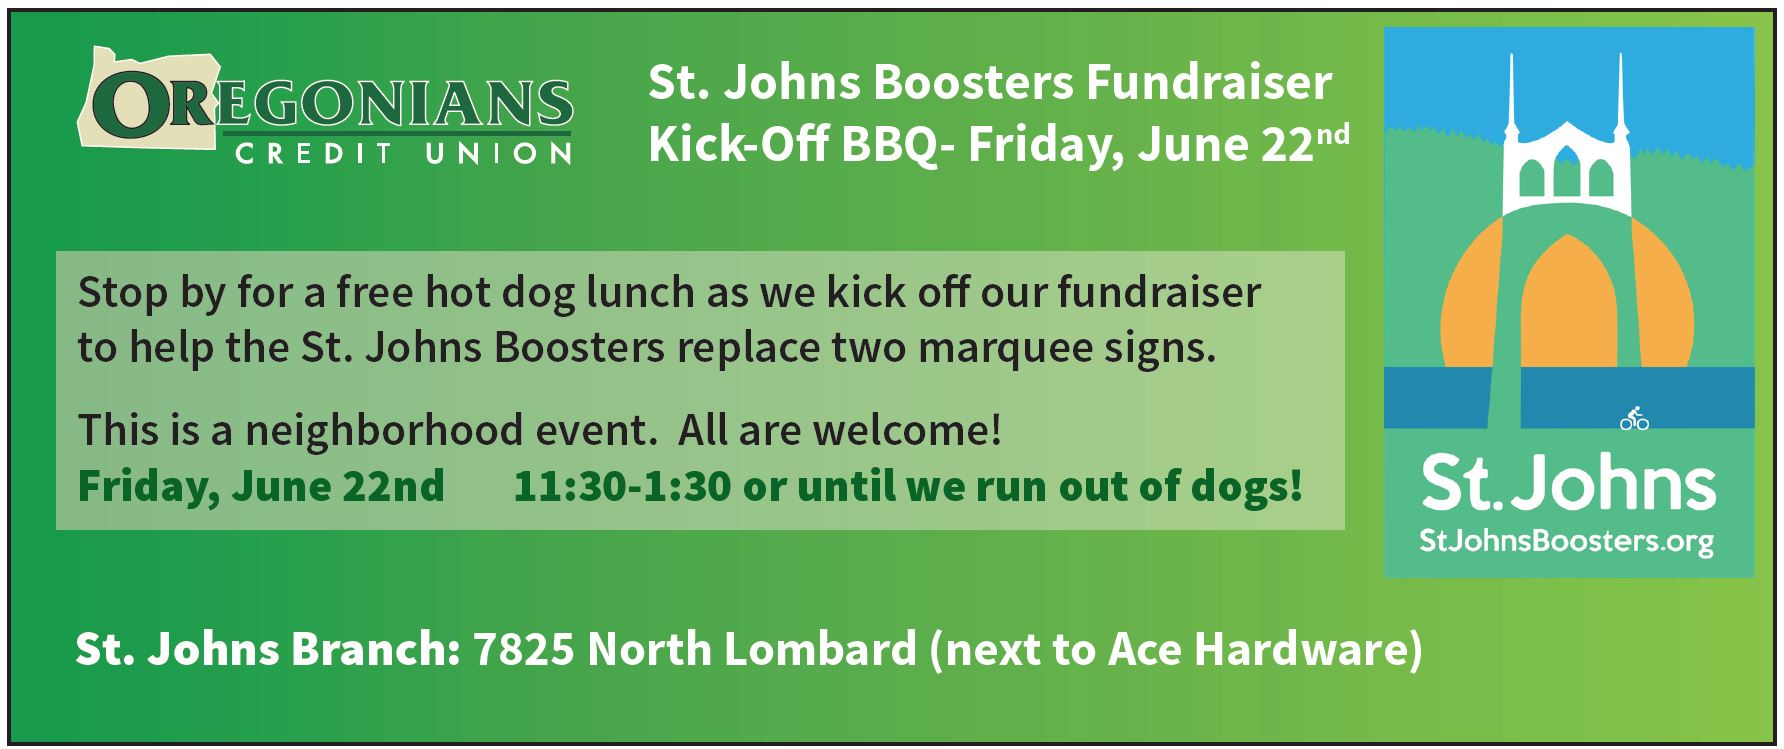 Oregonians CU fundraiser kick-off to benefit the St. Johns Boosters